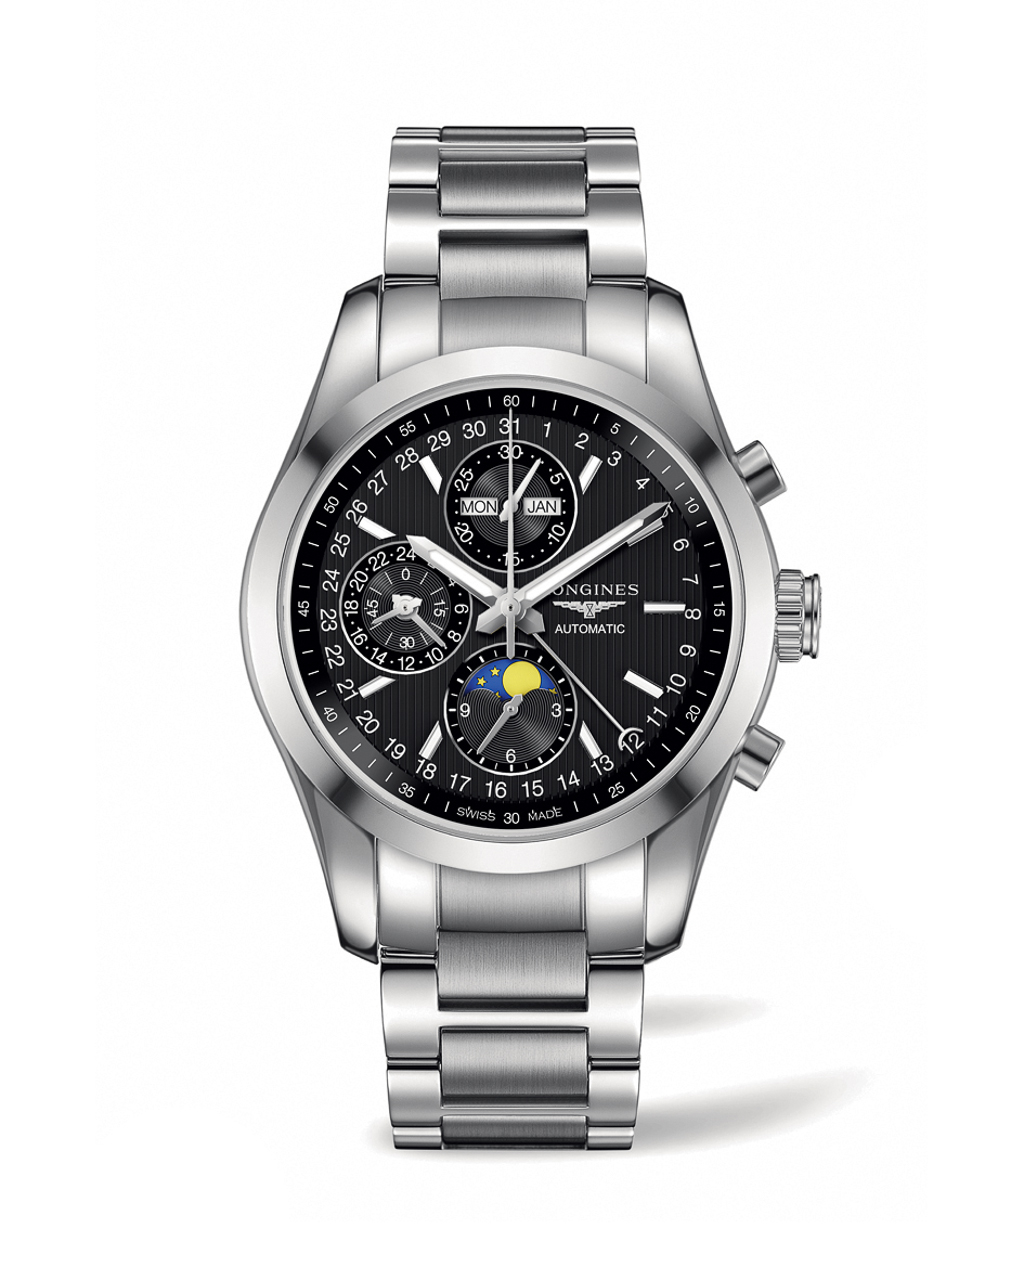 Longines Conquest Classic MoonPhase-1-2